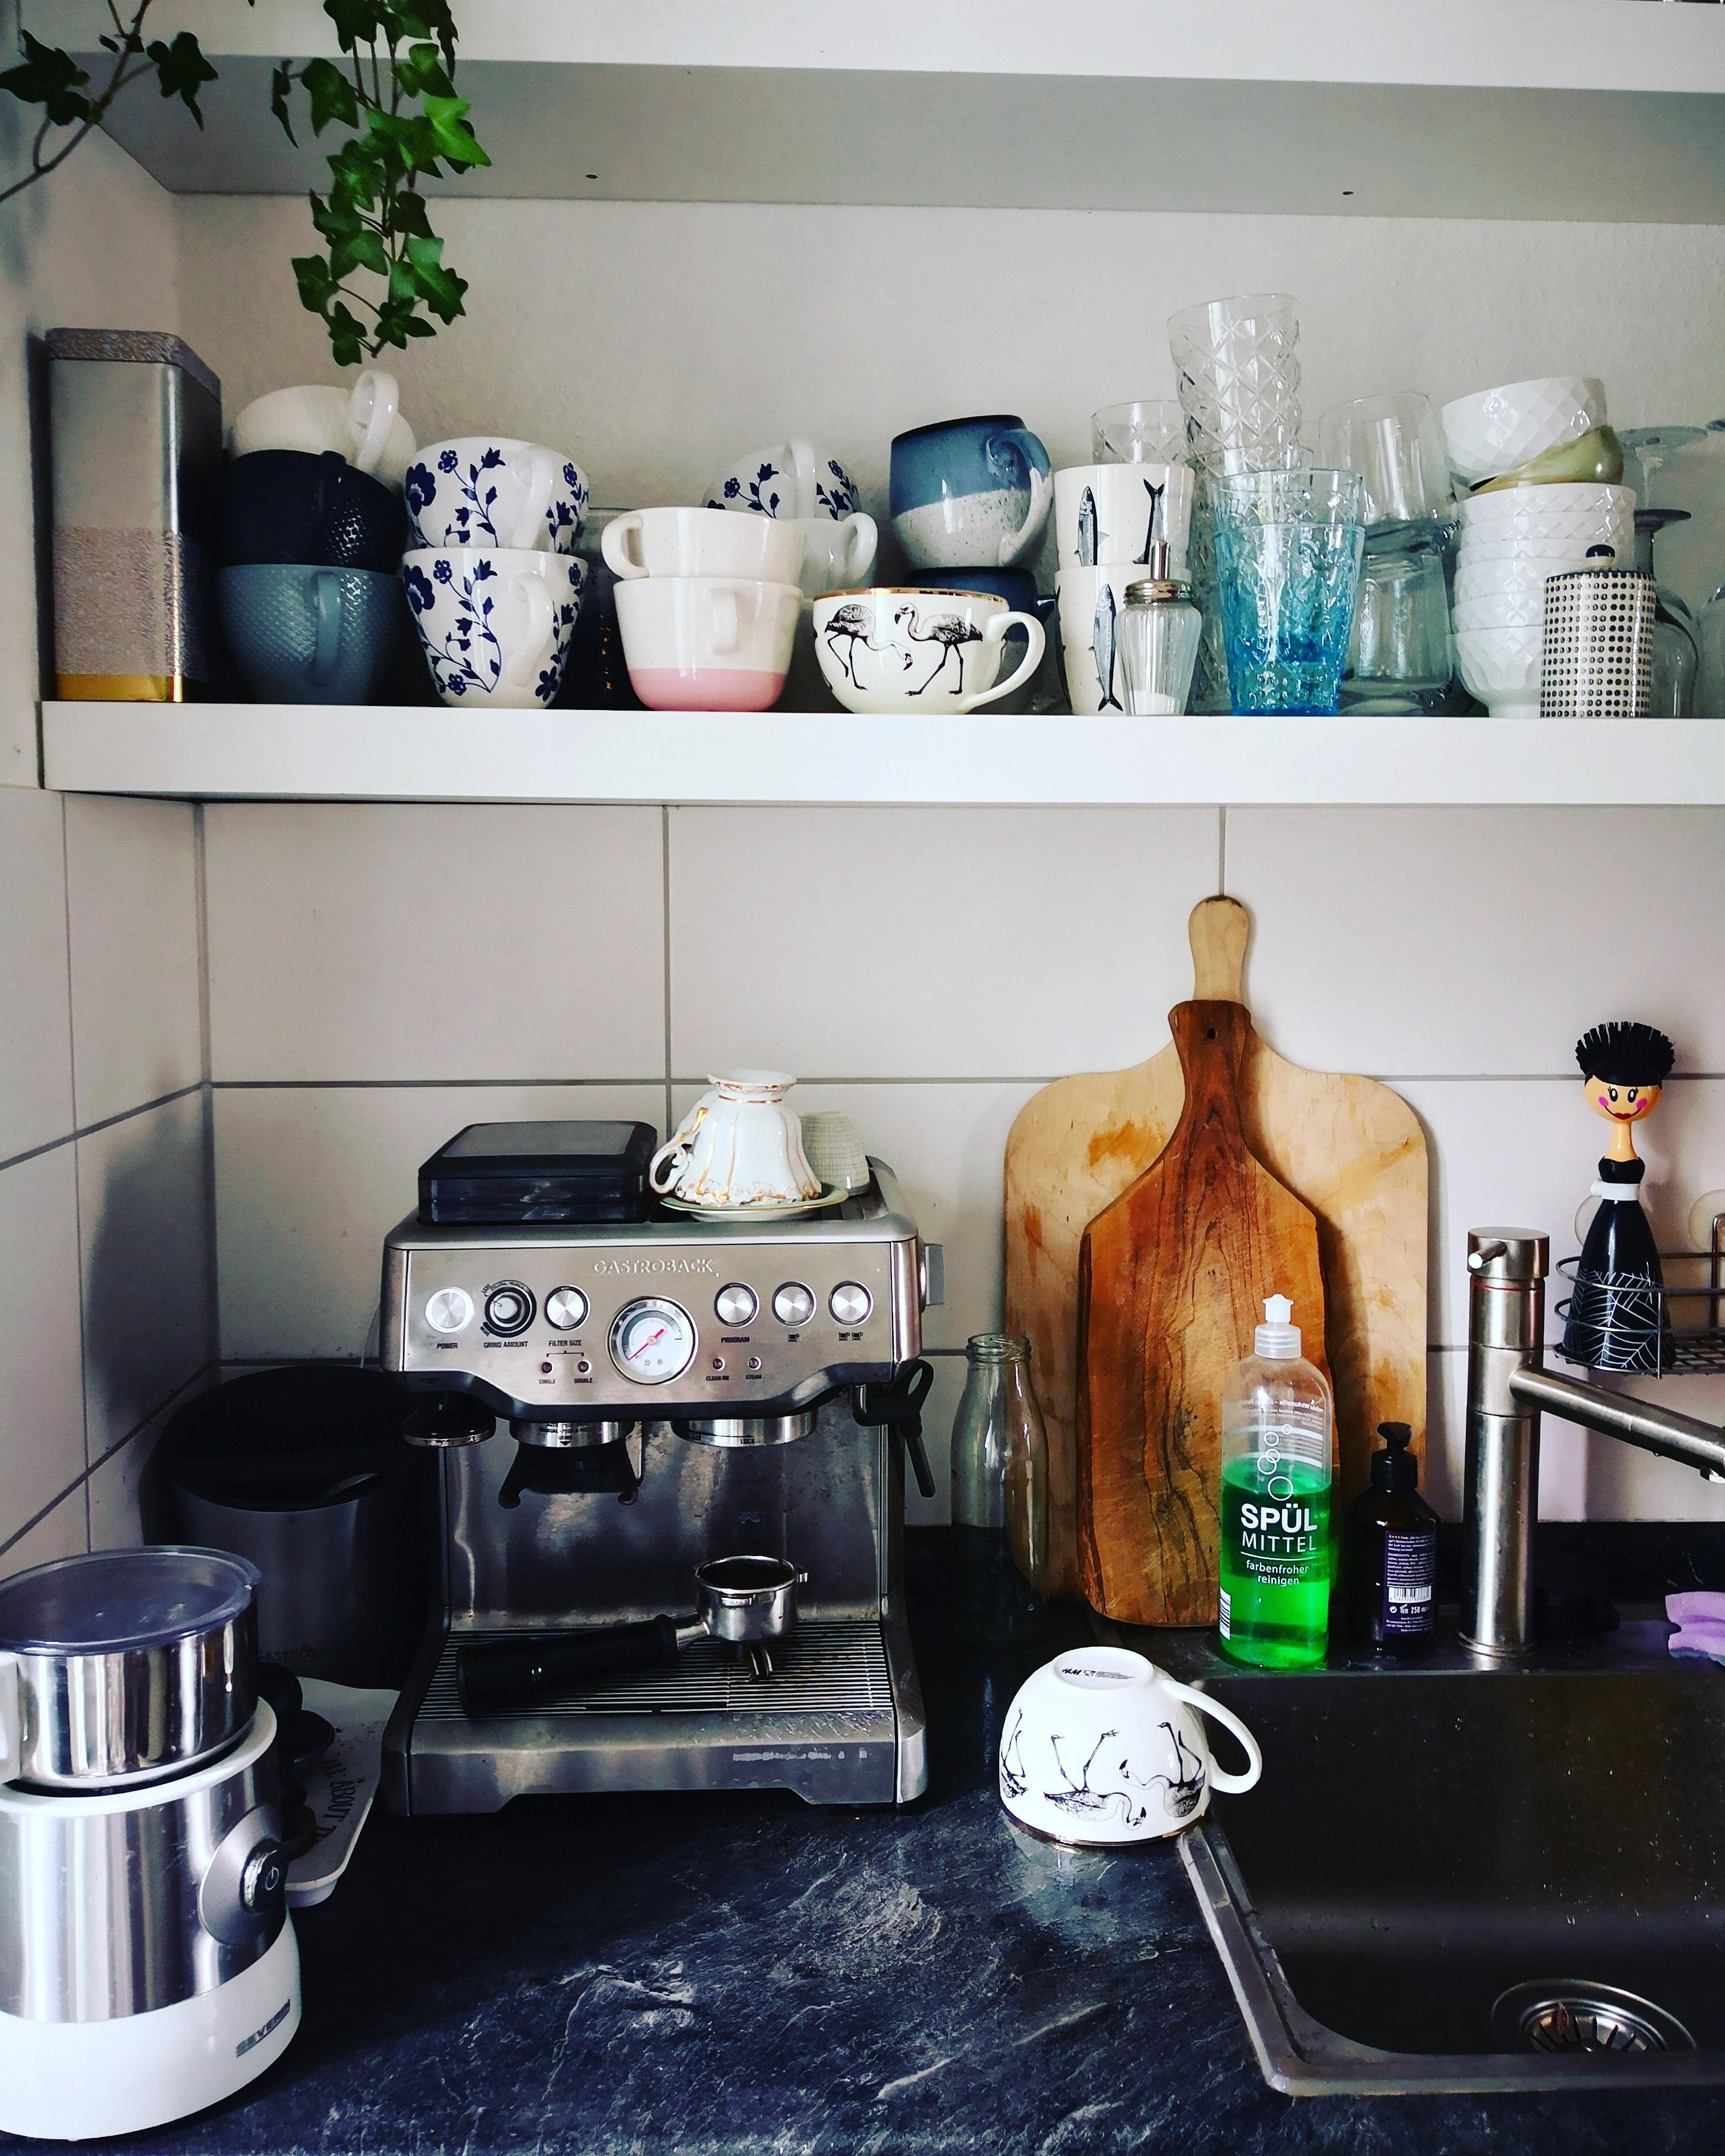 Sehr wichtiges kuechengeraete   coffee addicted livingchallenge kitchen kueche butfirstcoffee  a4488a61 74a7 4931 abf9 e7502c891aef